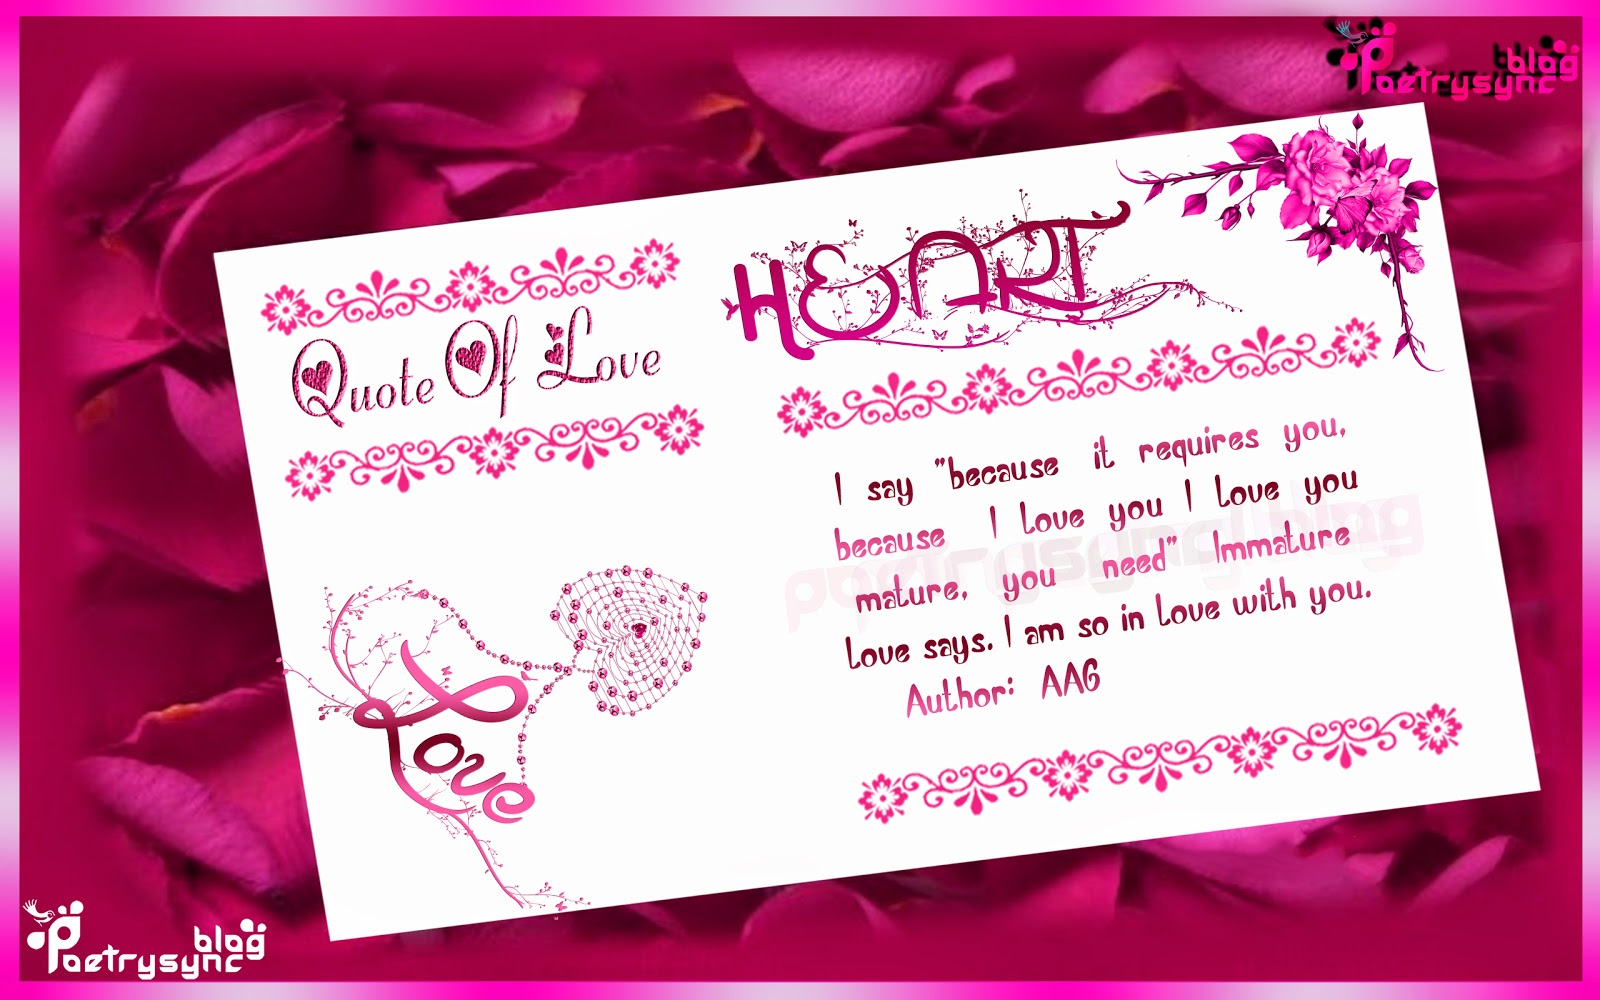 Short Love Quotes With Images And Quotes Reader And Mp3 Vol 1